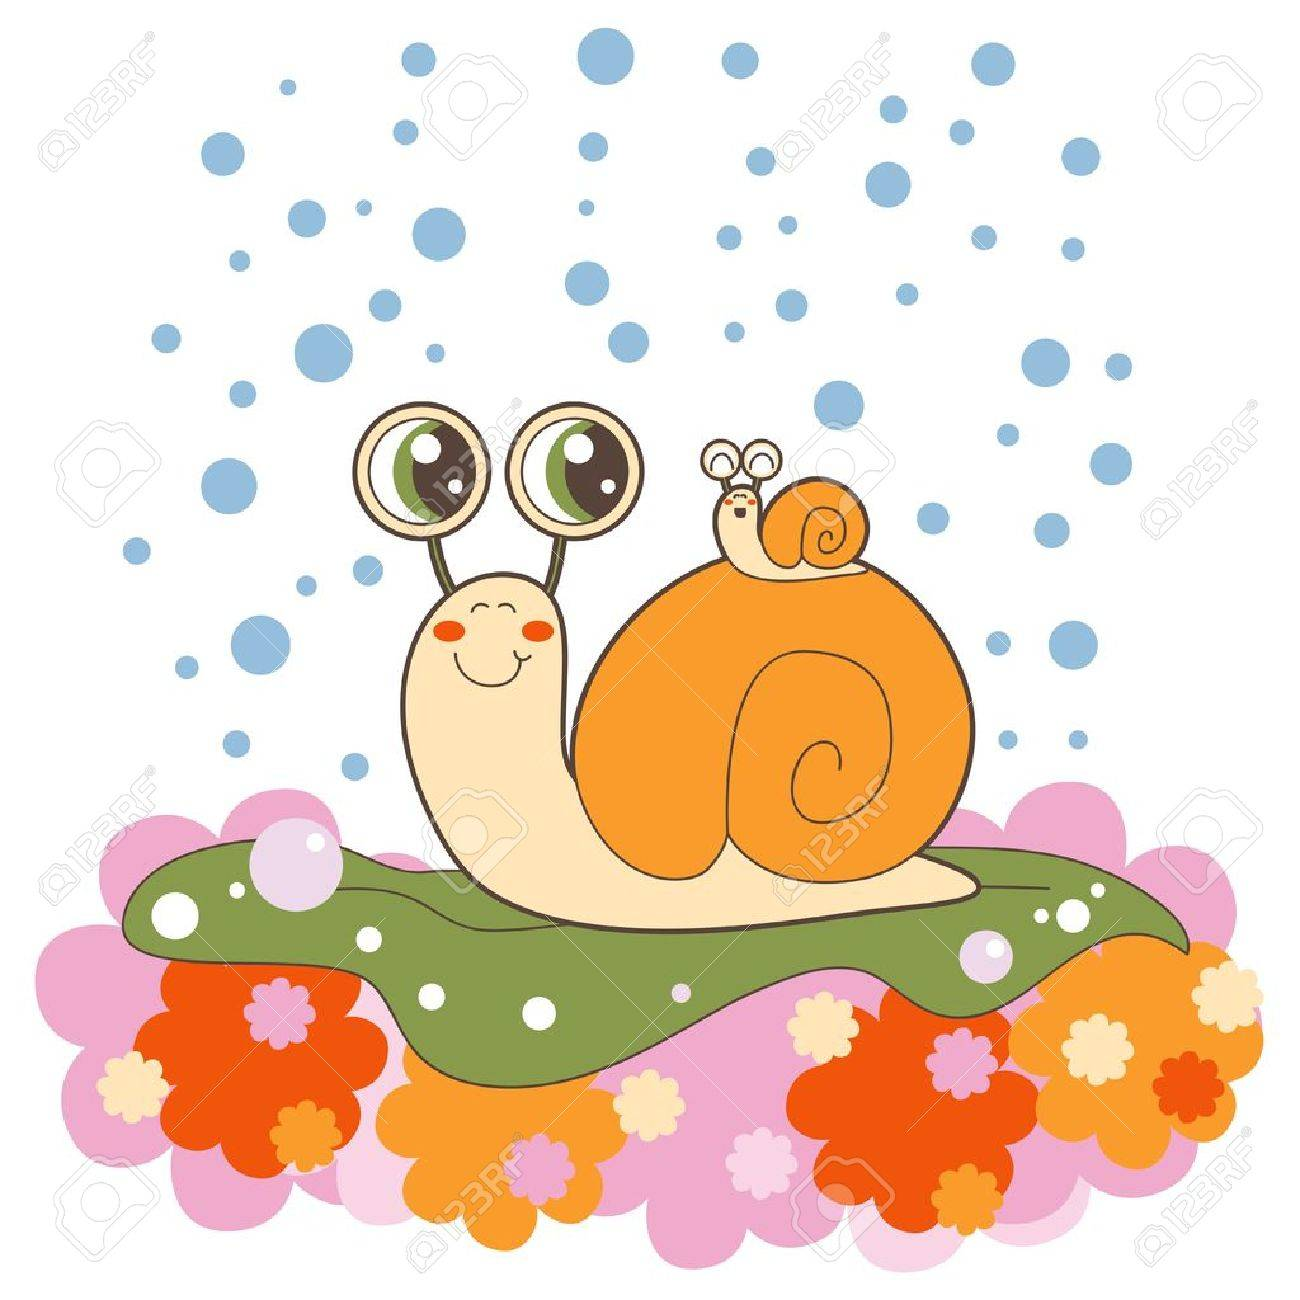 Lovely snail family outdoors crawling on a lettuce leaf in the rain Stock Vector - 11974535